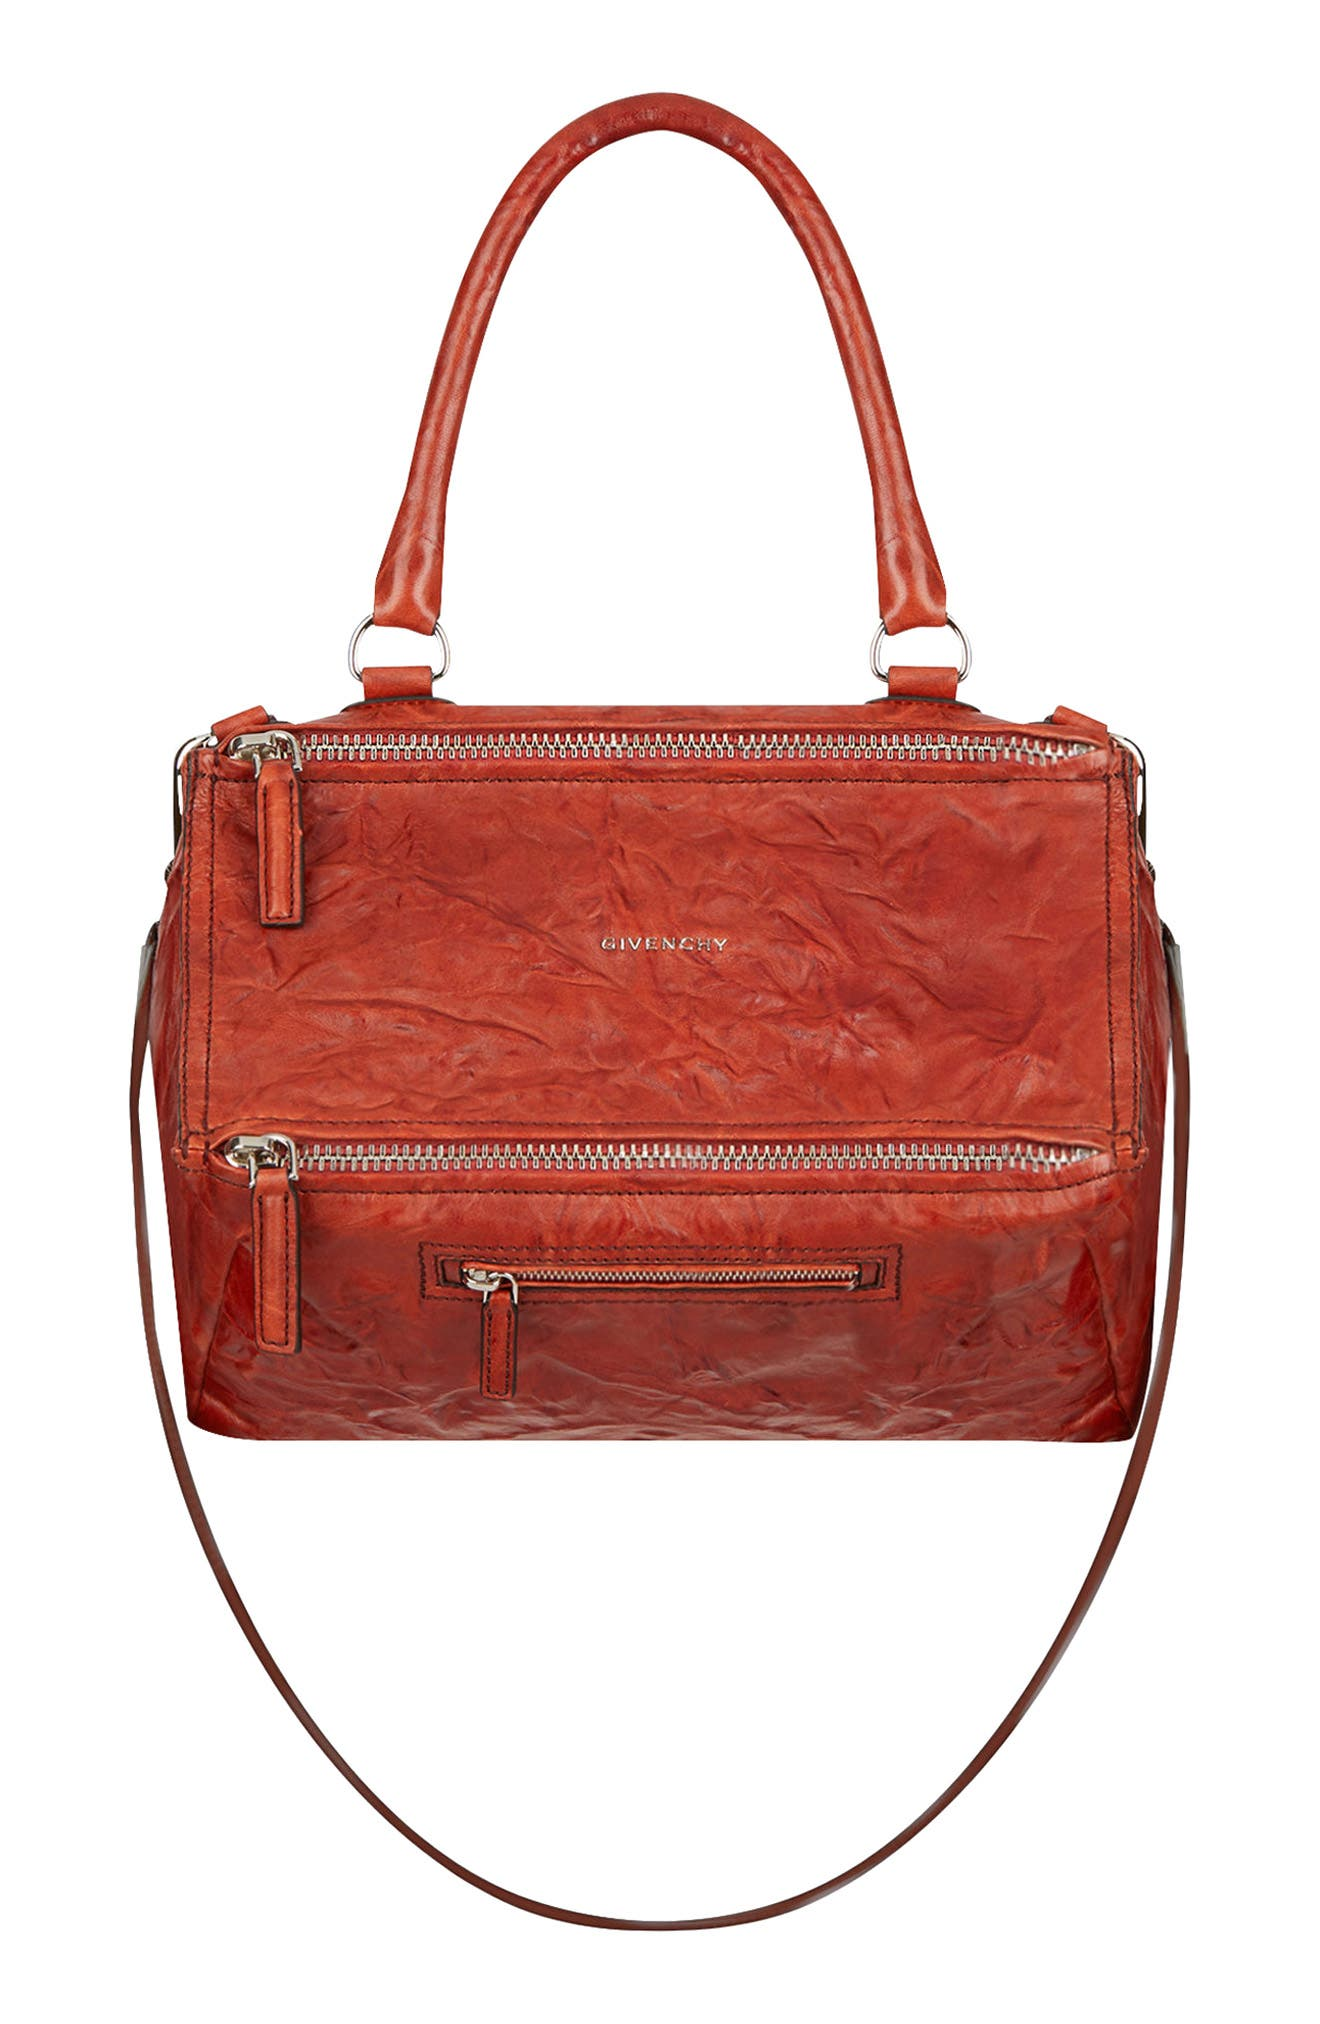 9c3a4394d3ce Givenchy  Medium Pepe Pandora  Leather Satchel - Red In Mahogany ...